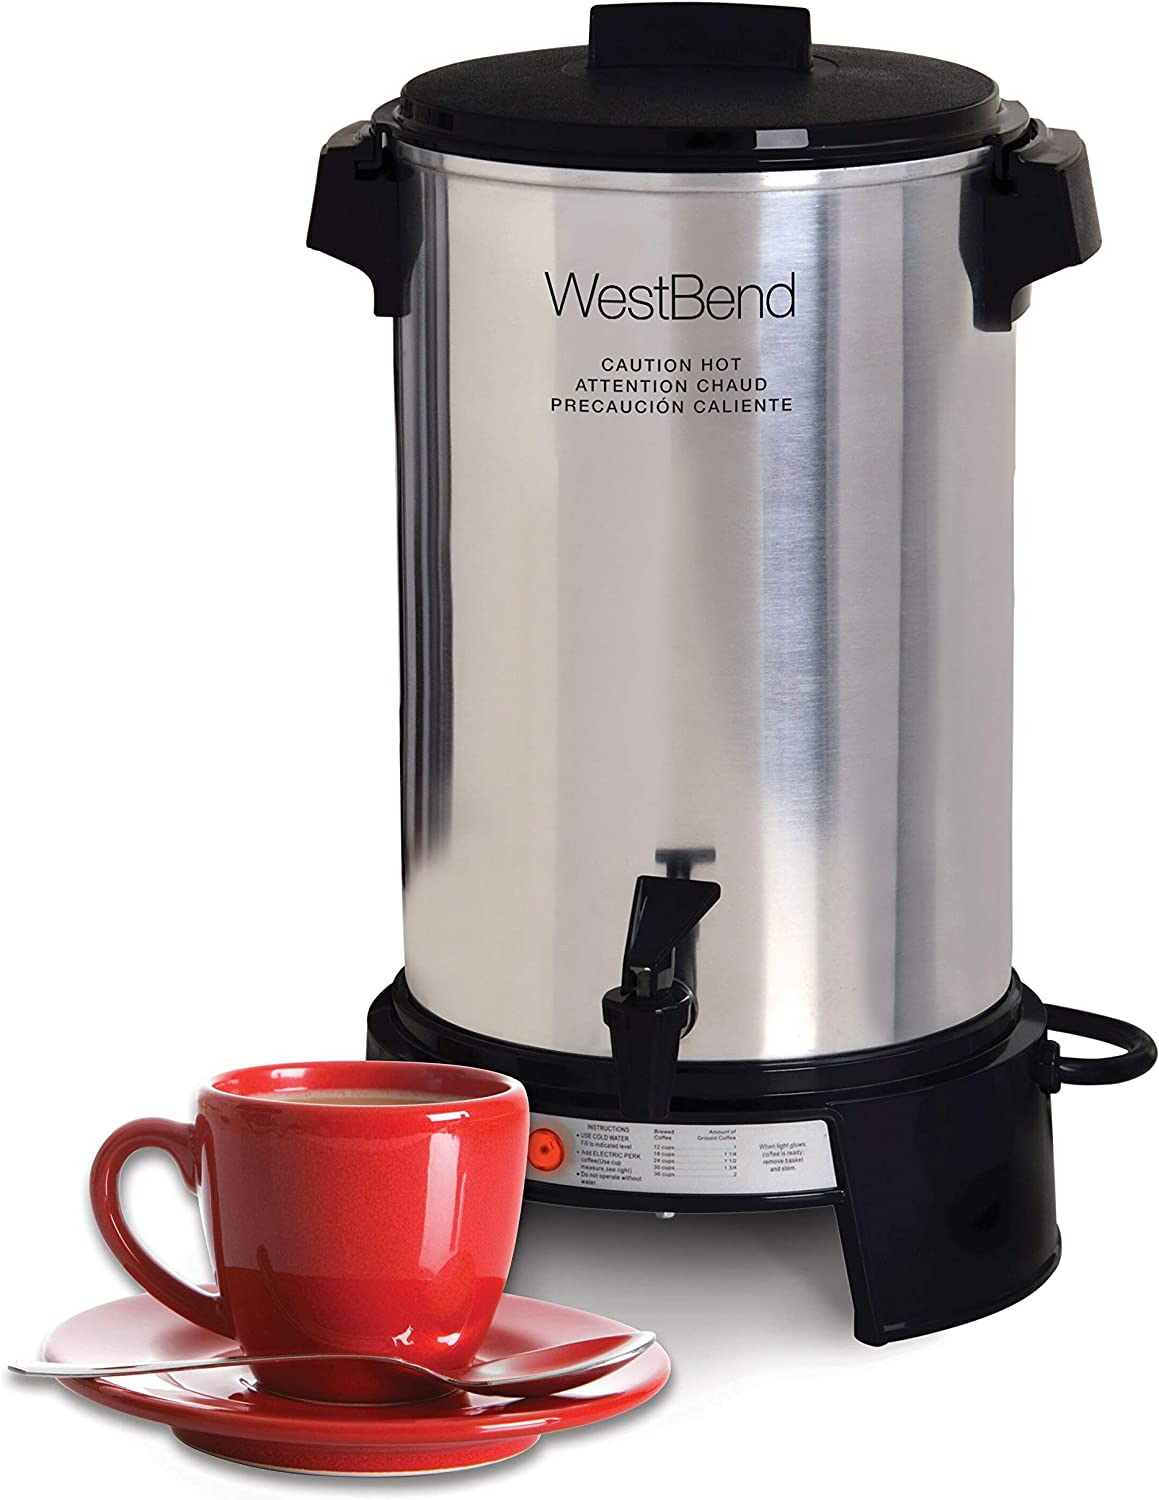 West Bend 43536 Highly Polished Aluminum Commercial Coffee Urn Features Automatic Temperature Control Large Capacity with Quick Brewing Smooth Prep and Easy Clean Up, 36-Cup, Silver